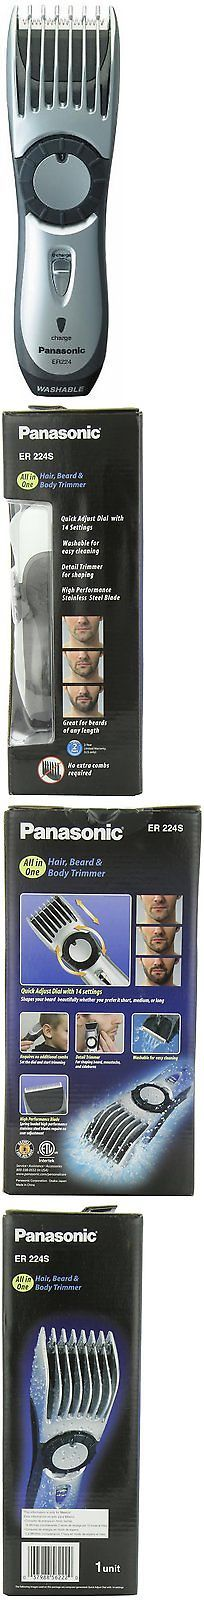 Clippers and Trimmers: All-In-One Hair Clipper And Beard Trimmer, Panasonic Er224s, New, Free Shipping BUY IT NOW ONLY: $34.77